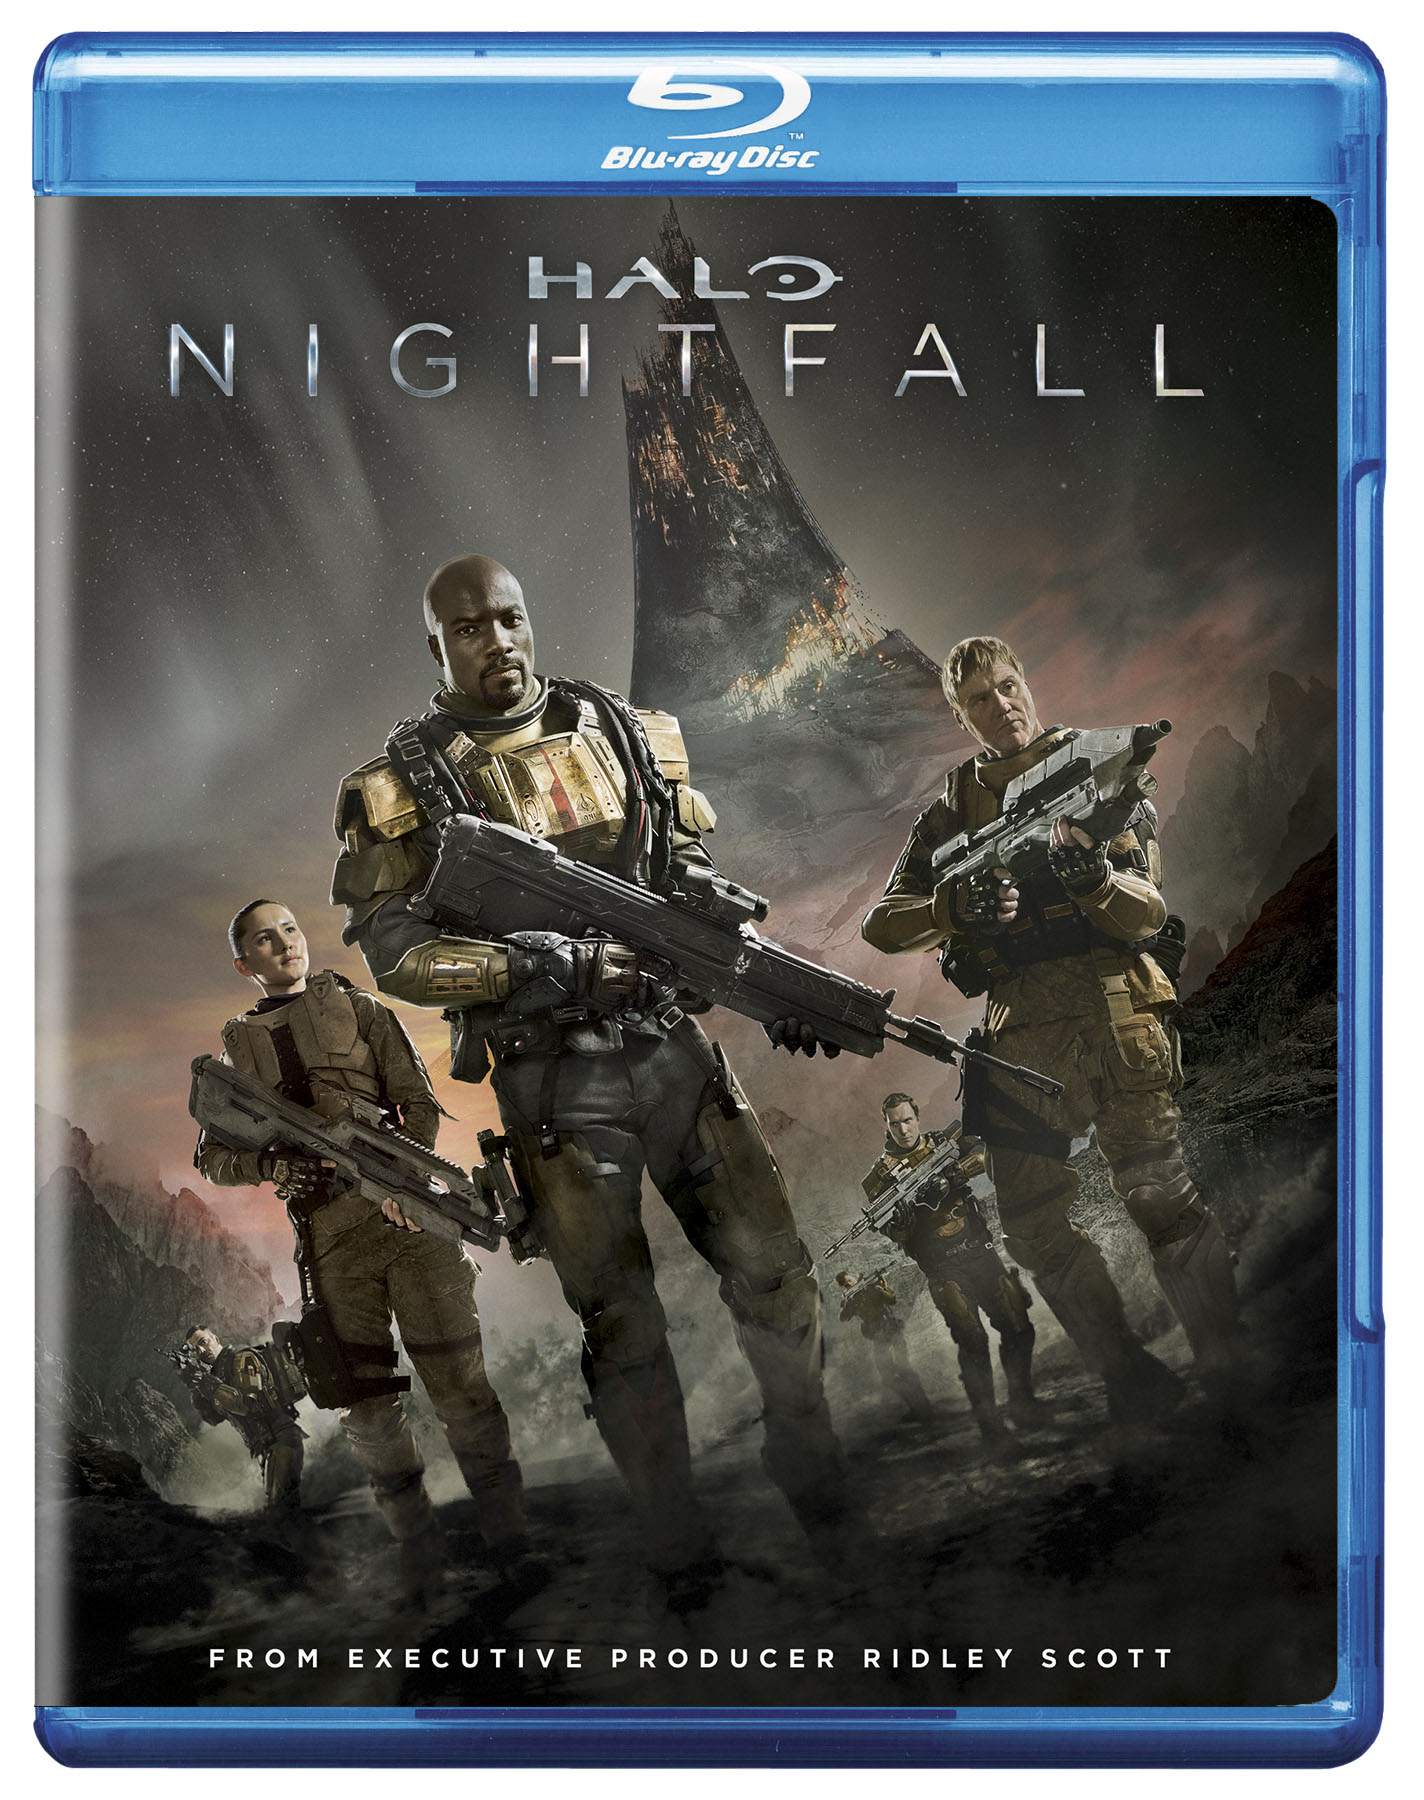 Halo: Nightfall comes to DVD and Blu-ray on March 17